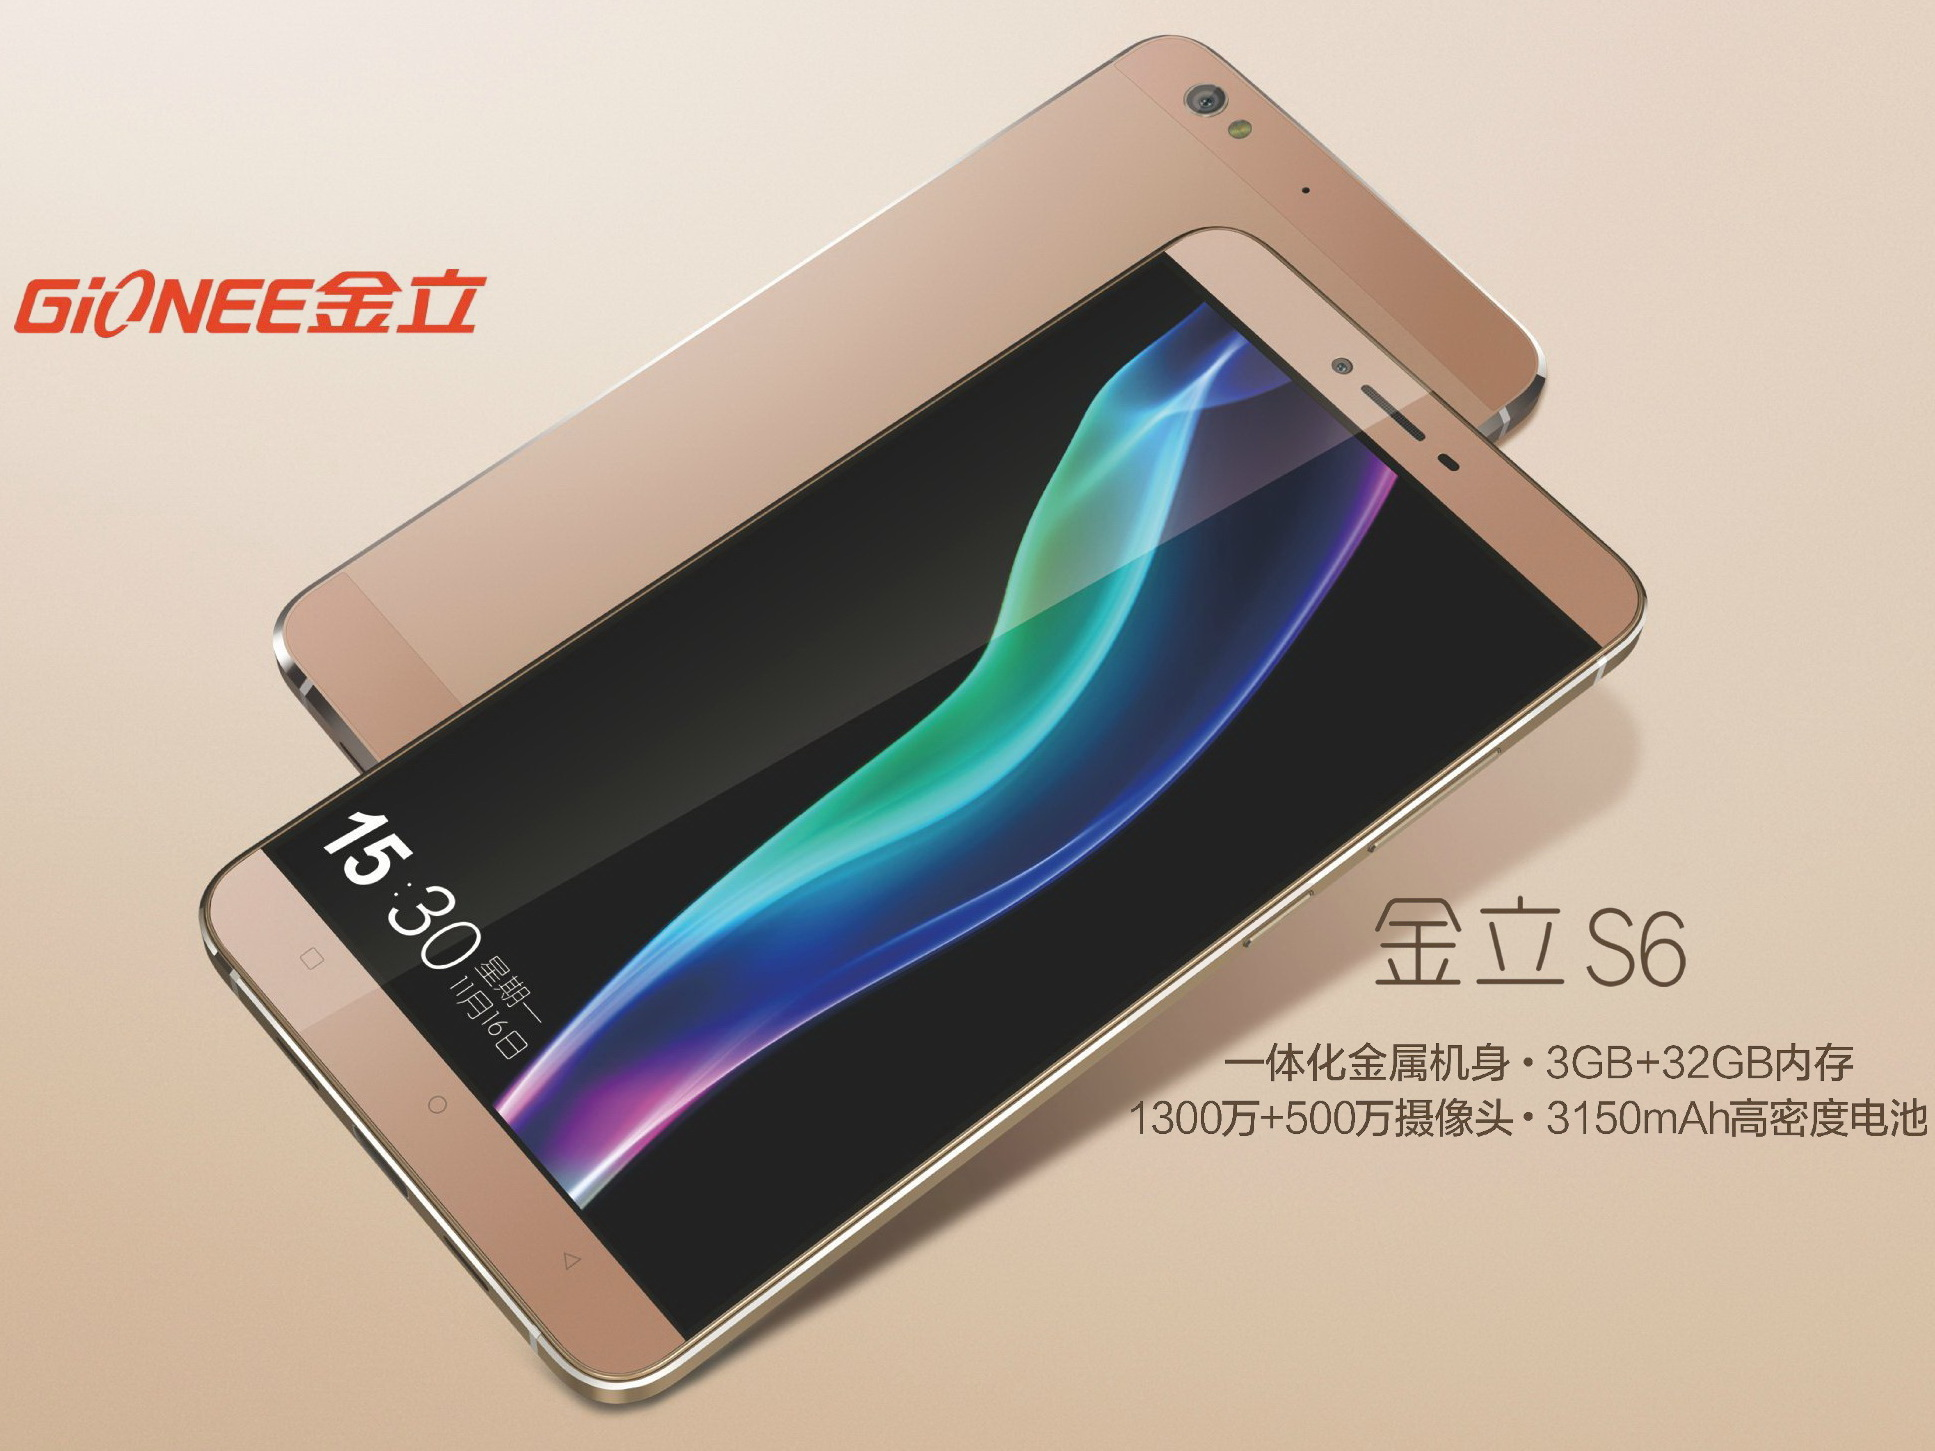 Gionee S6 smartphone to come with USB Type-C for 250 Euros